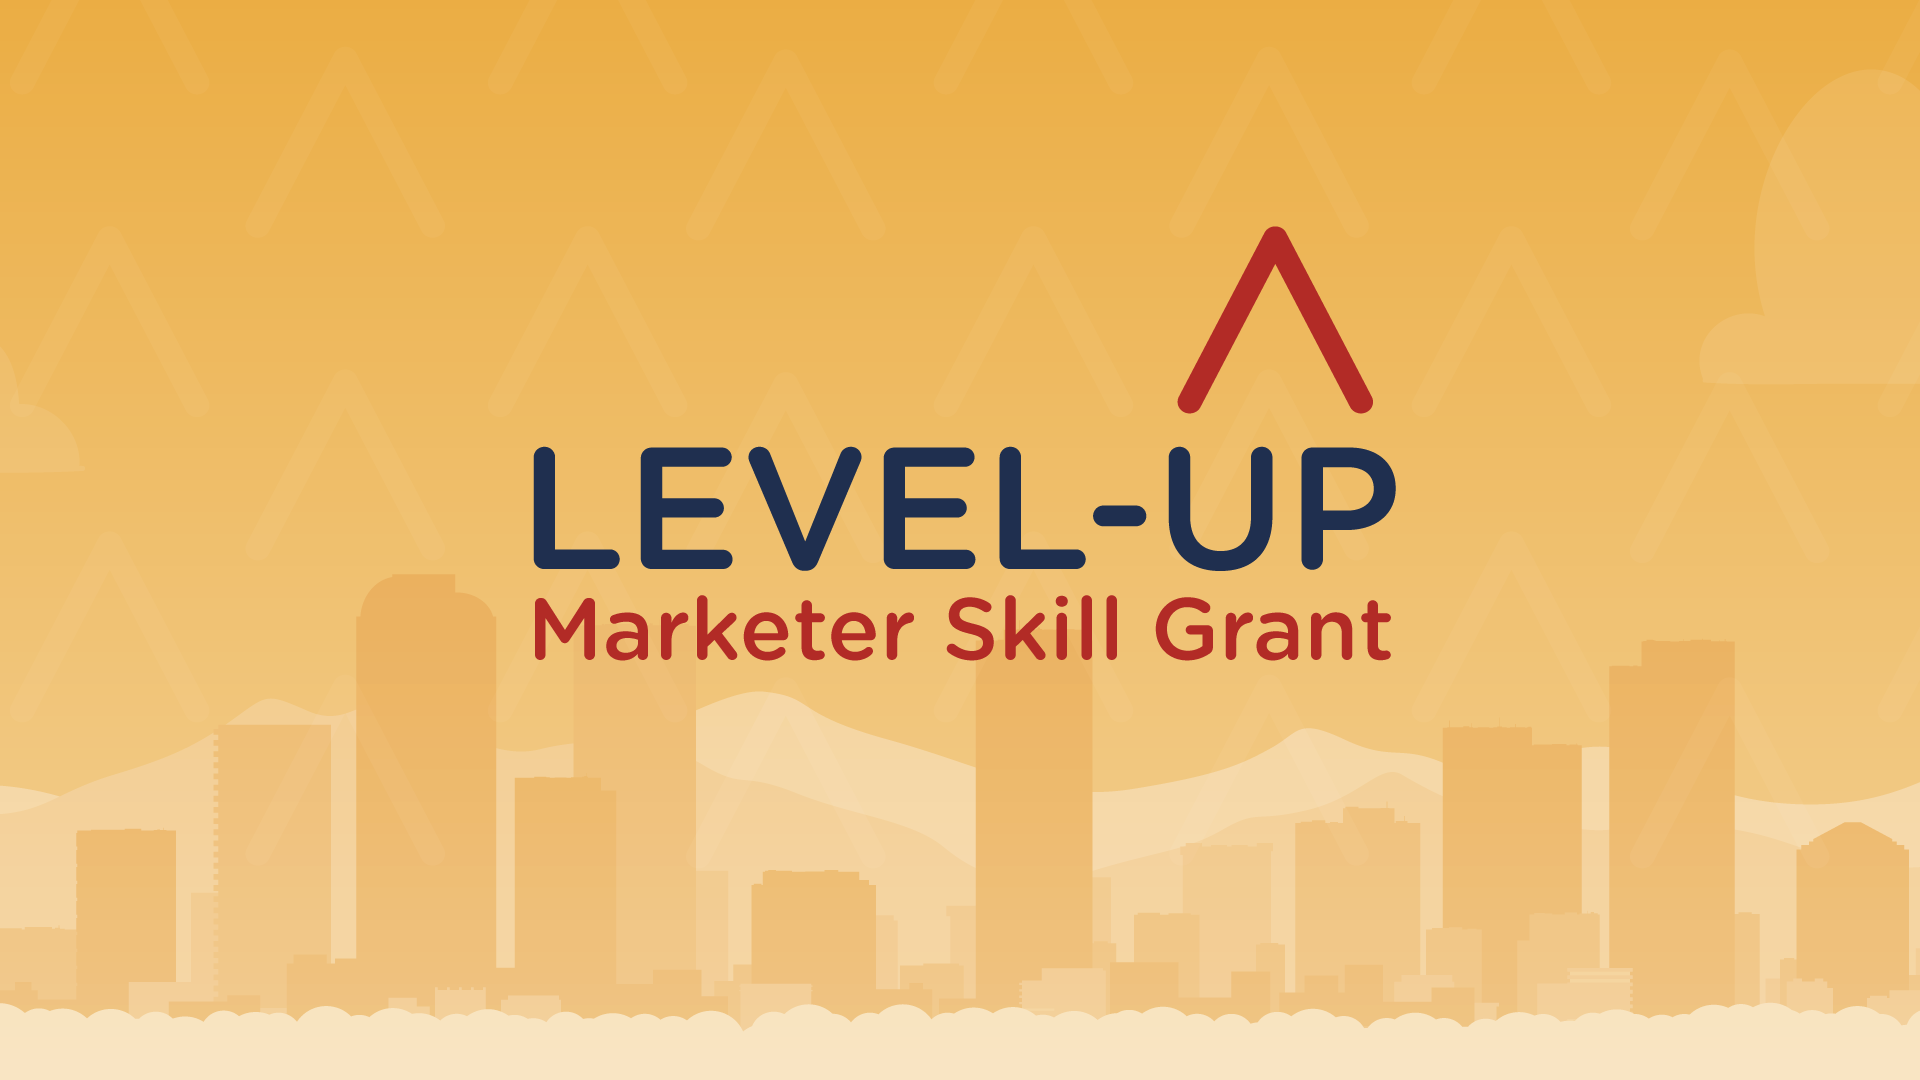 Level-Up Marketer Skill Grant